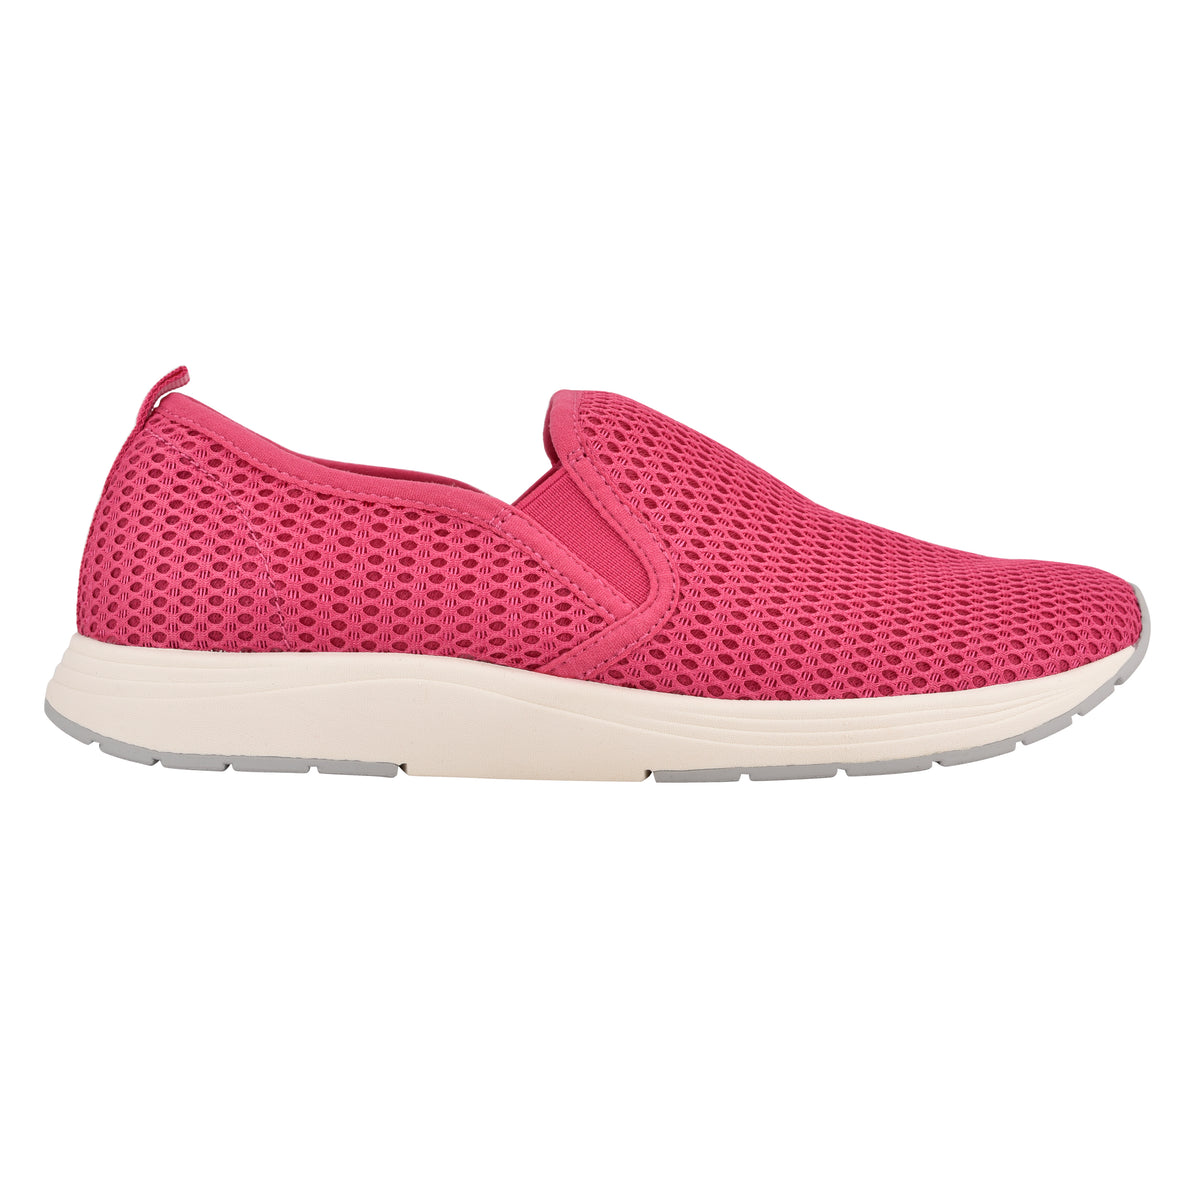 Liv Slip On Walking Shoes